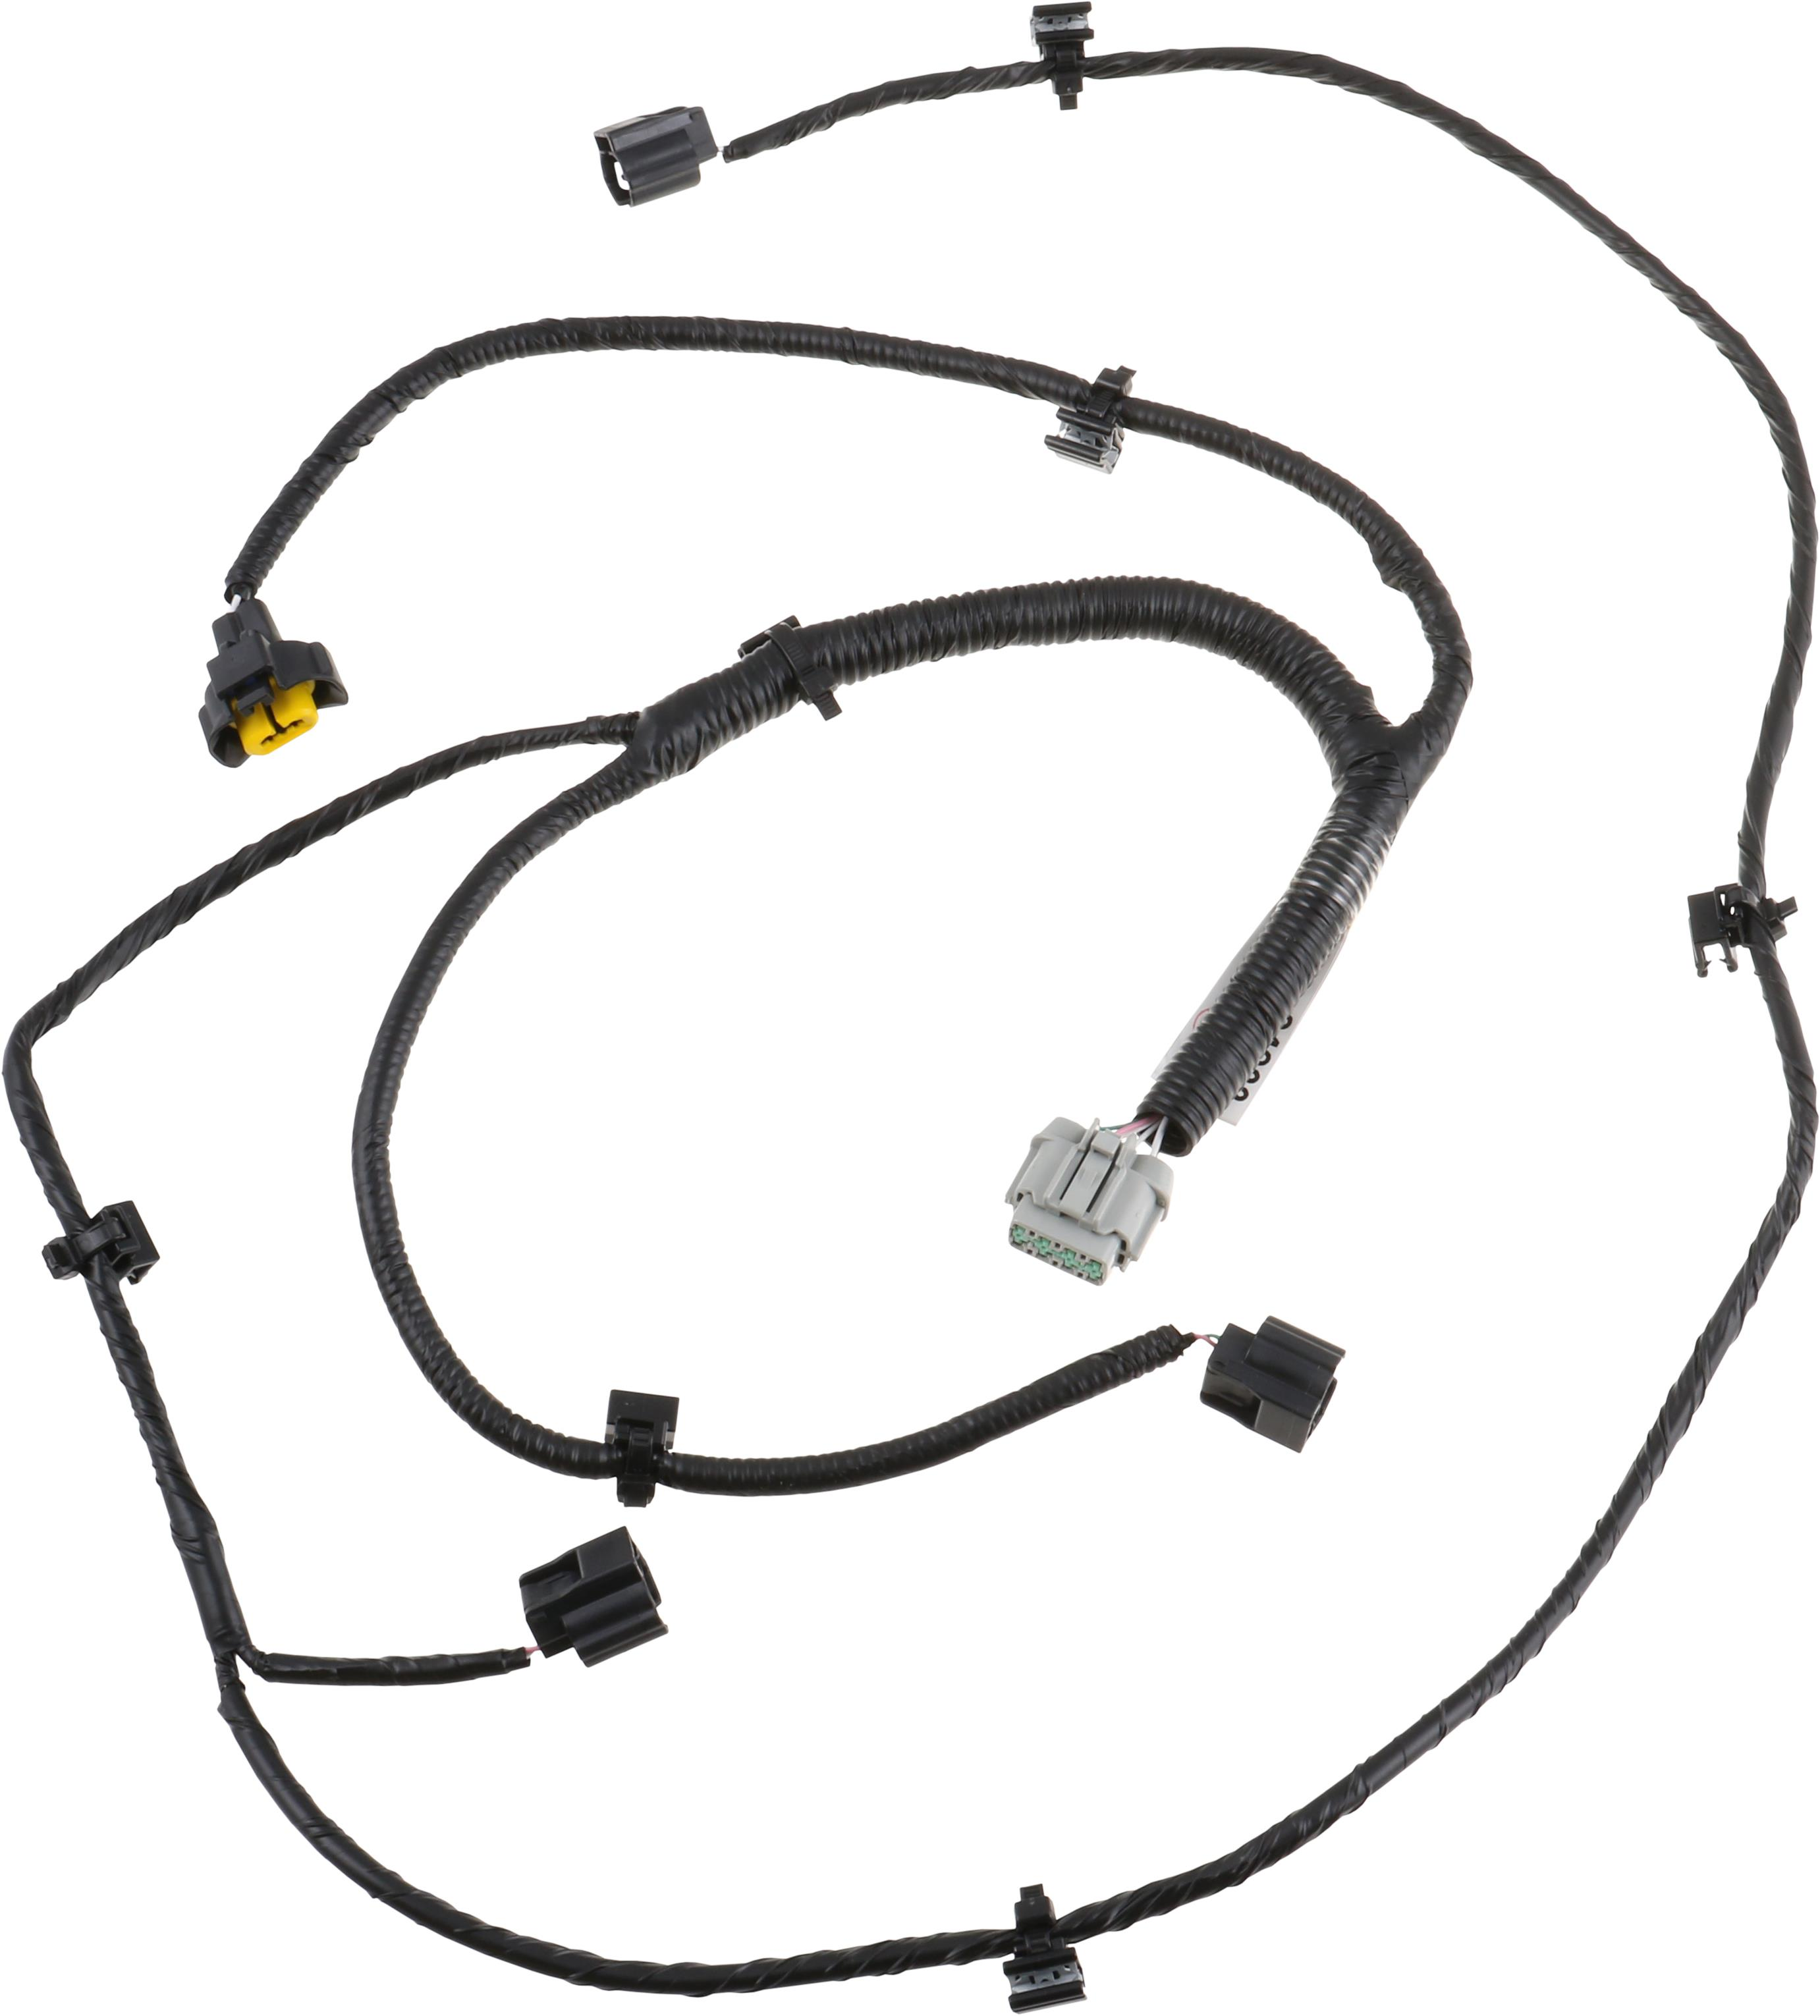 Nissan Sentra Harness Sub Bumper Front Engine Wiring